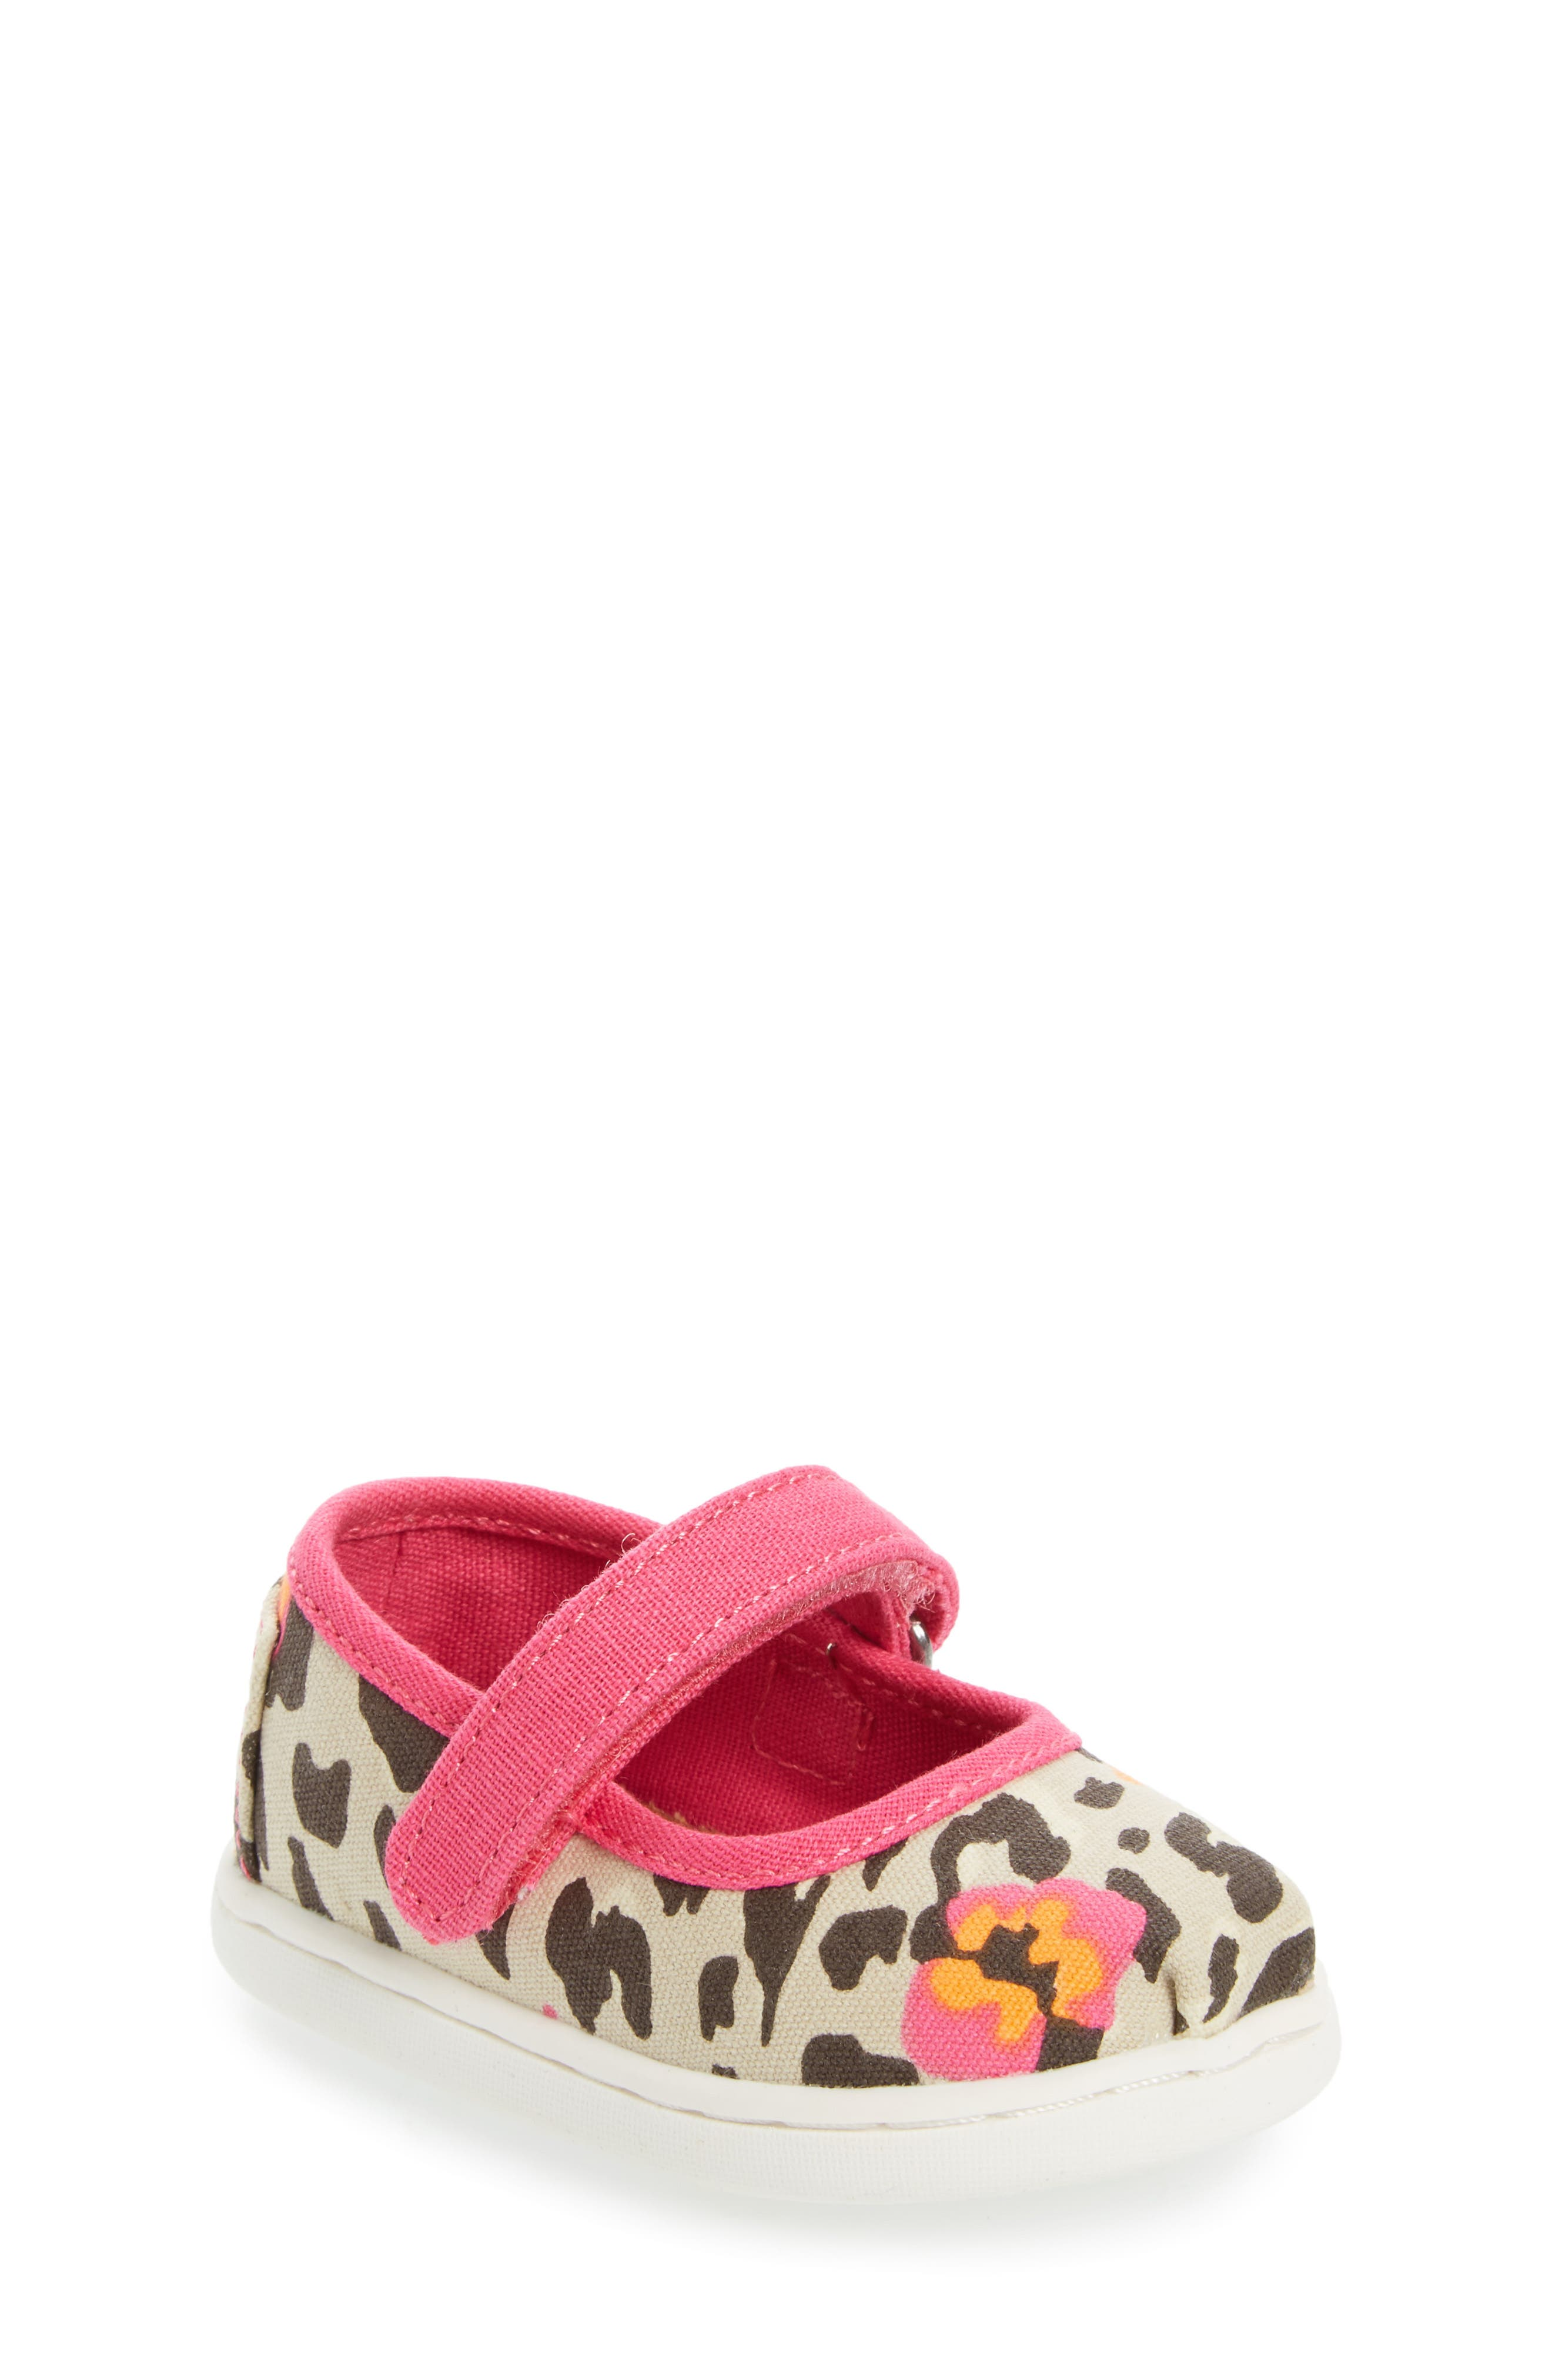 Alternate Image 1 Selected - TOMS Tiny Mary Jane Flat (Baby, Walker & Toddler)